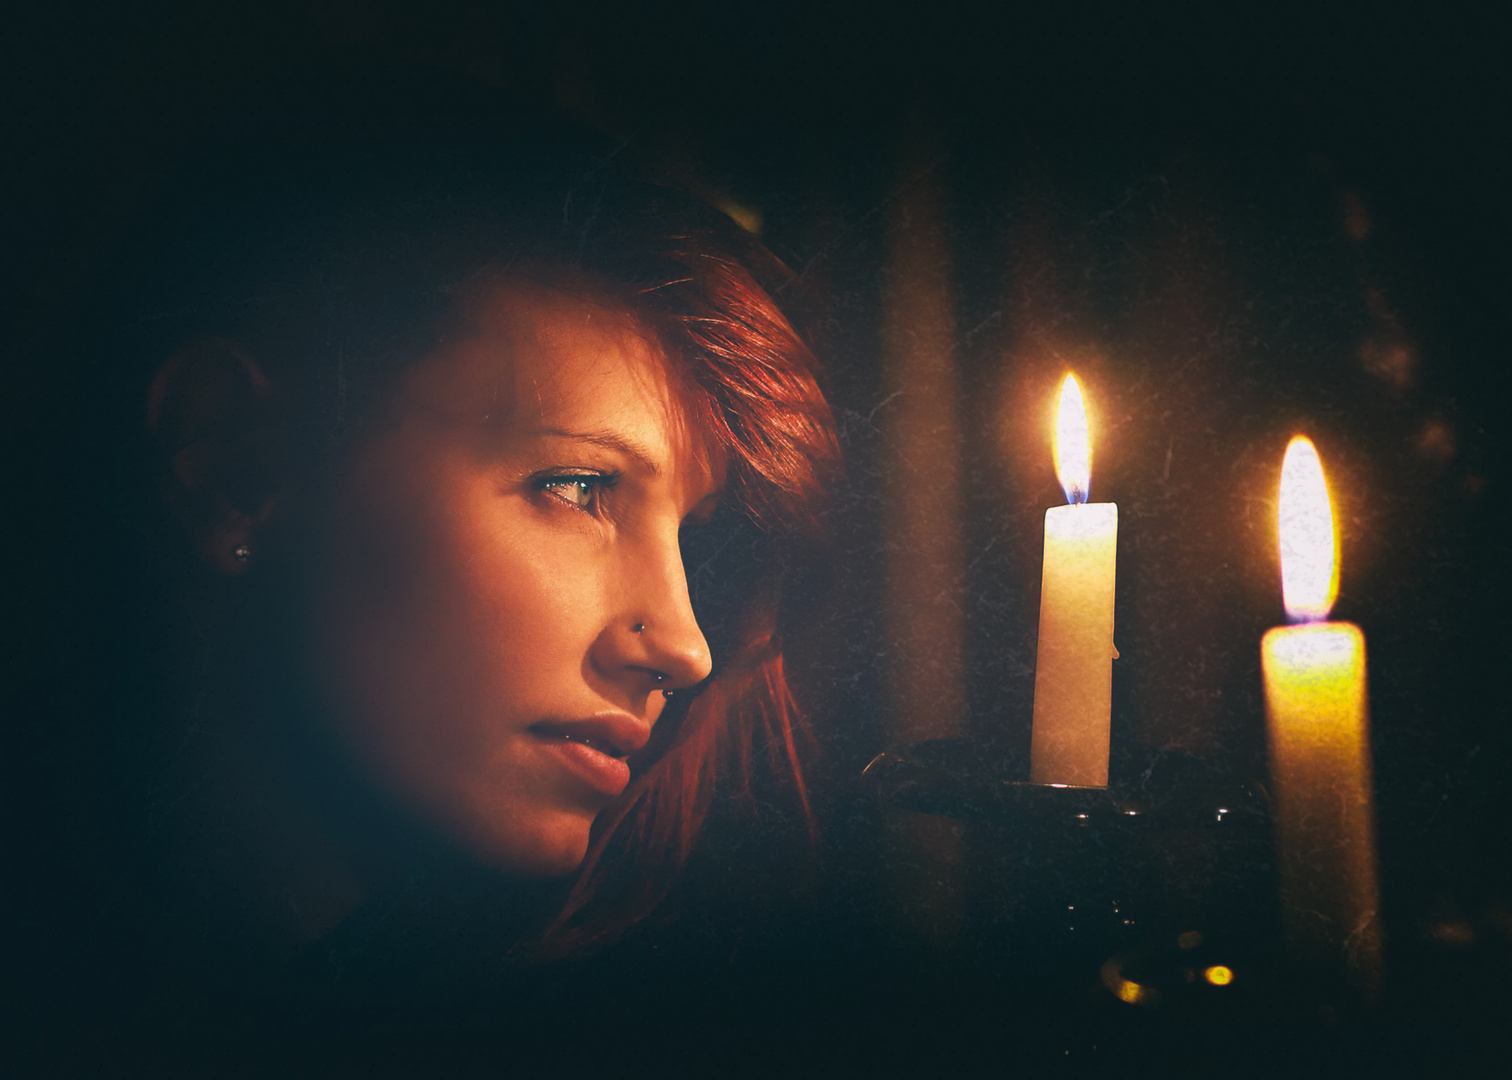 """*YR-24* """"candle light dreams instead of November blues""""   (available light)"""